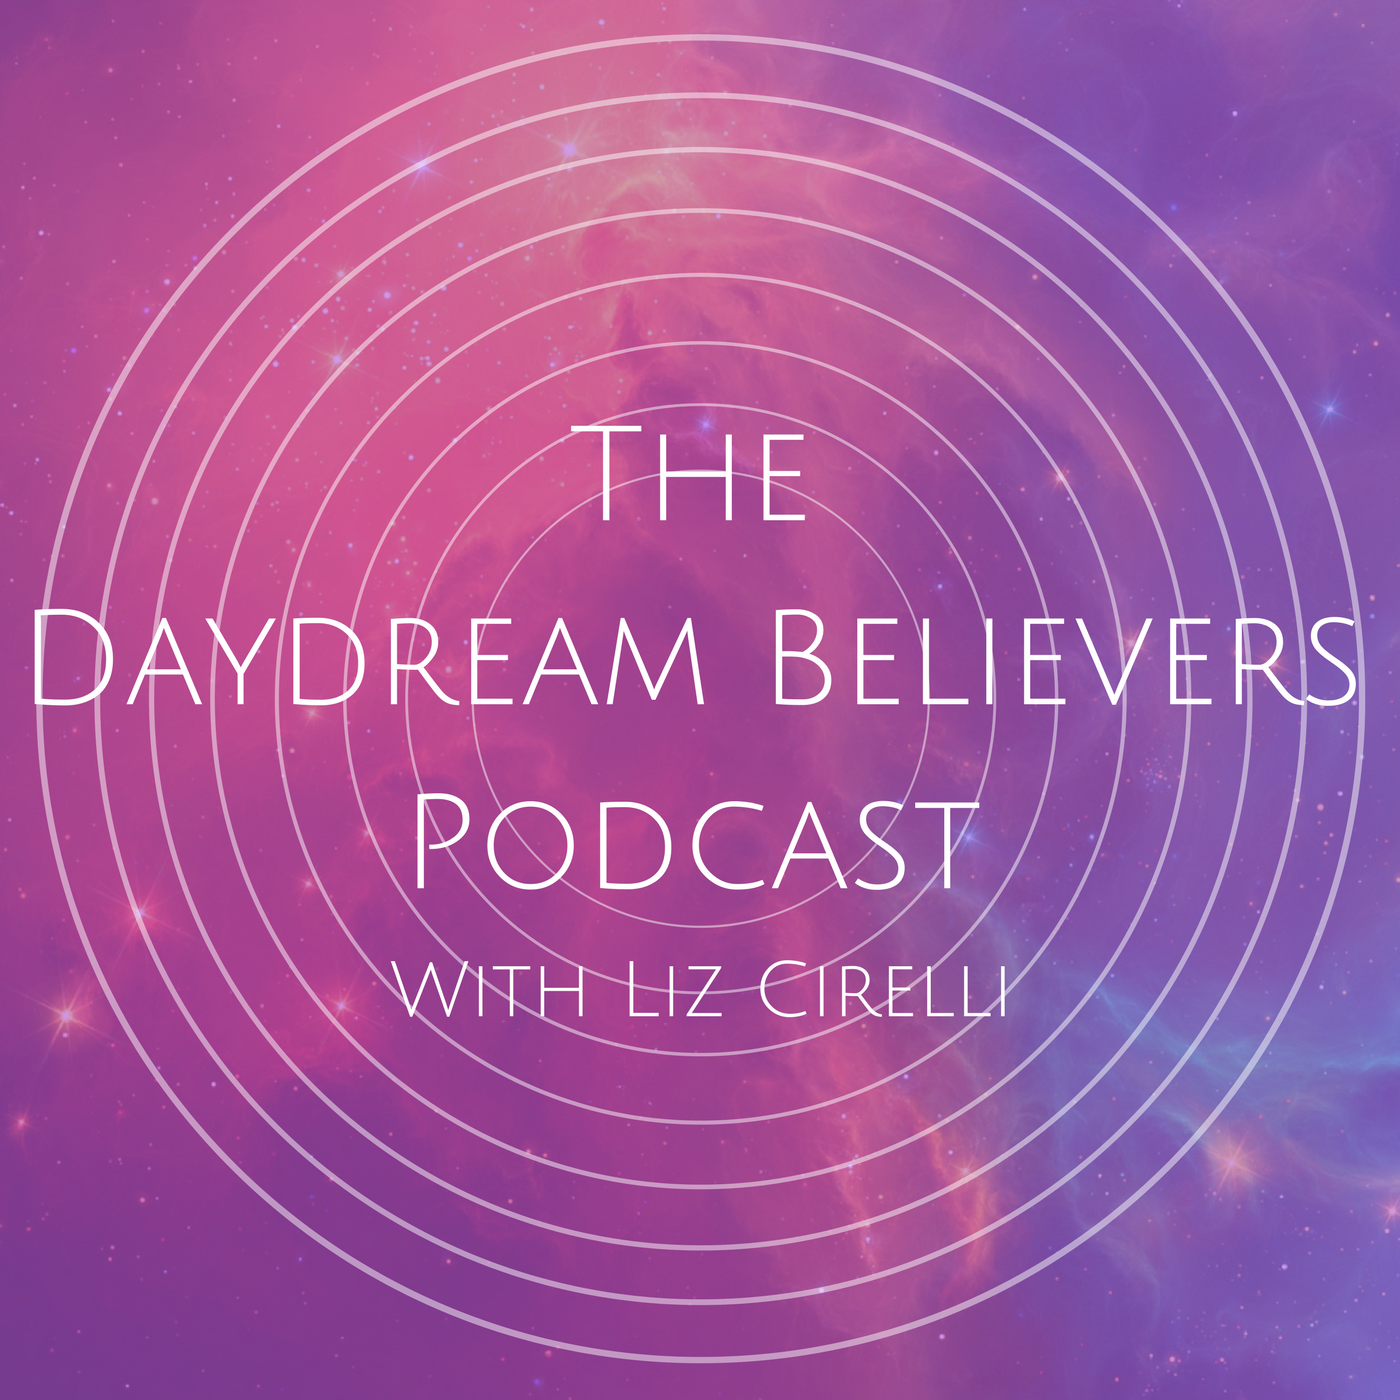 Daydream Believers Podcast